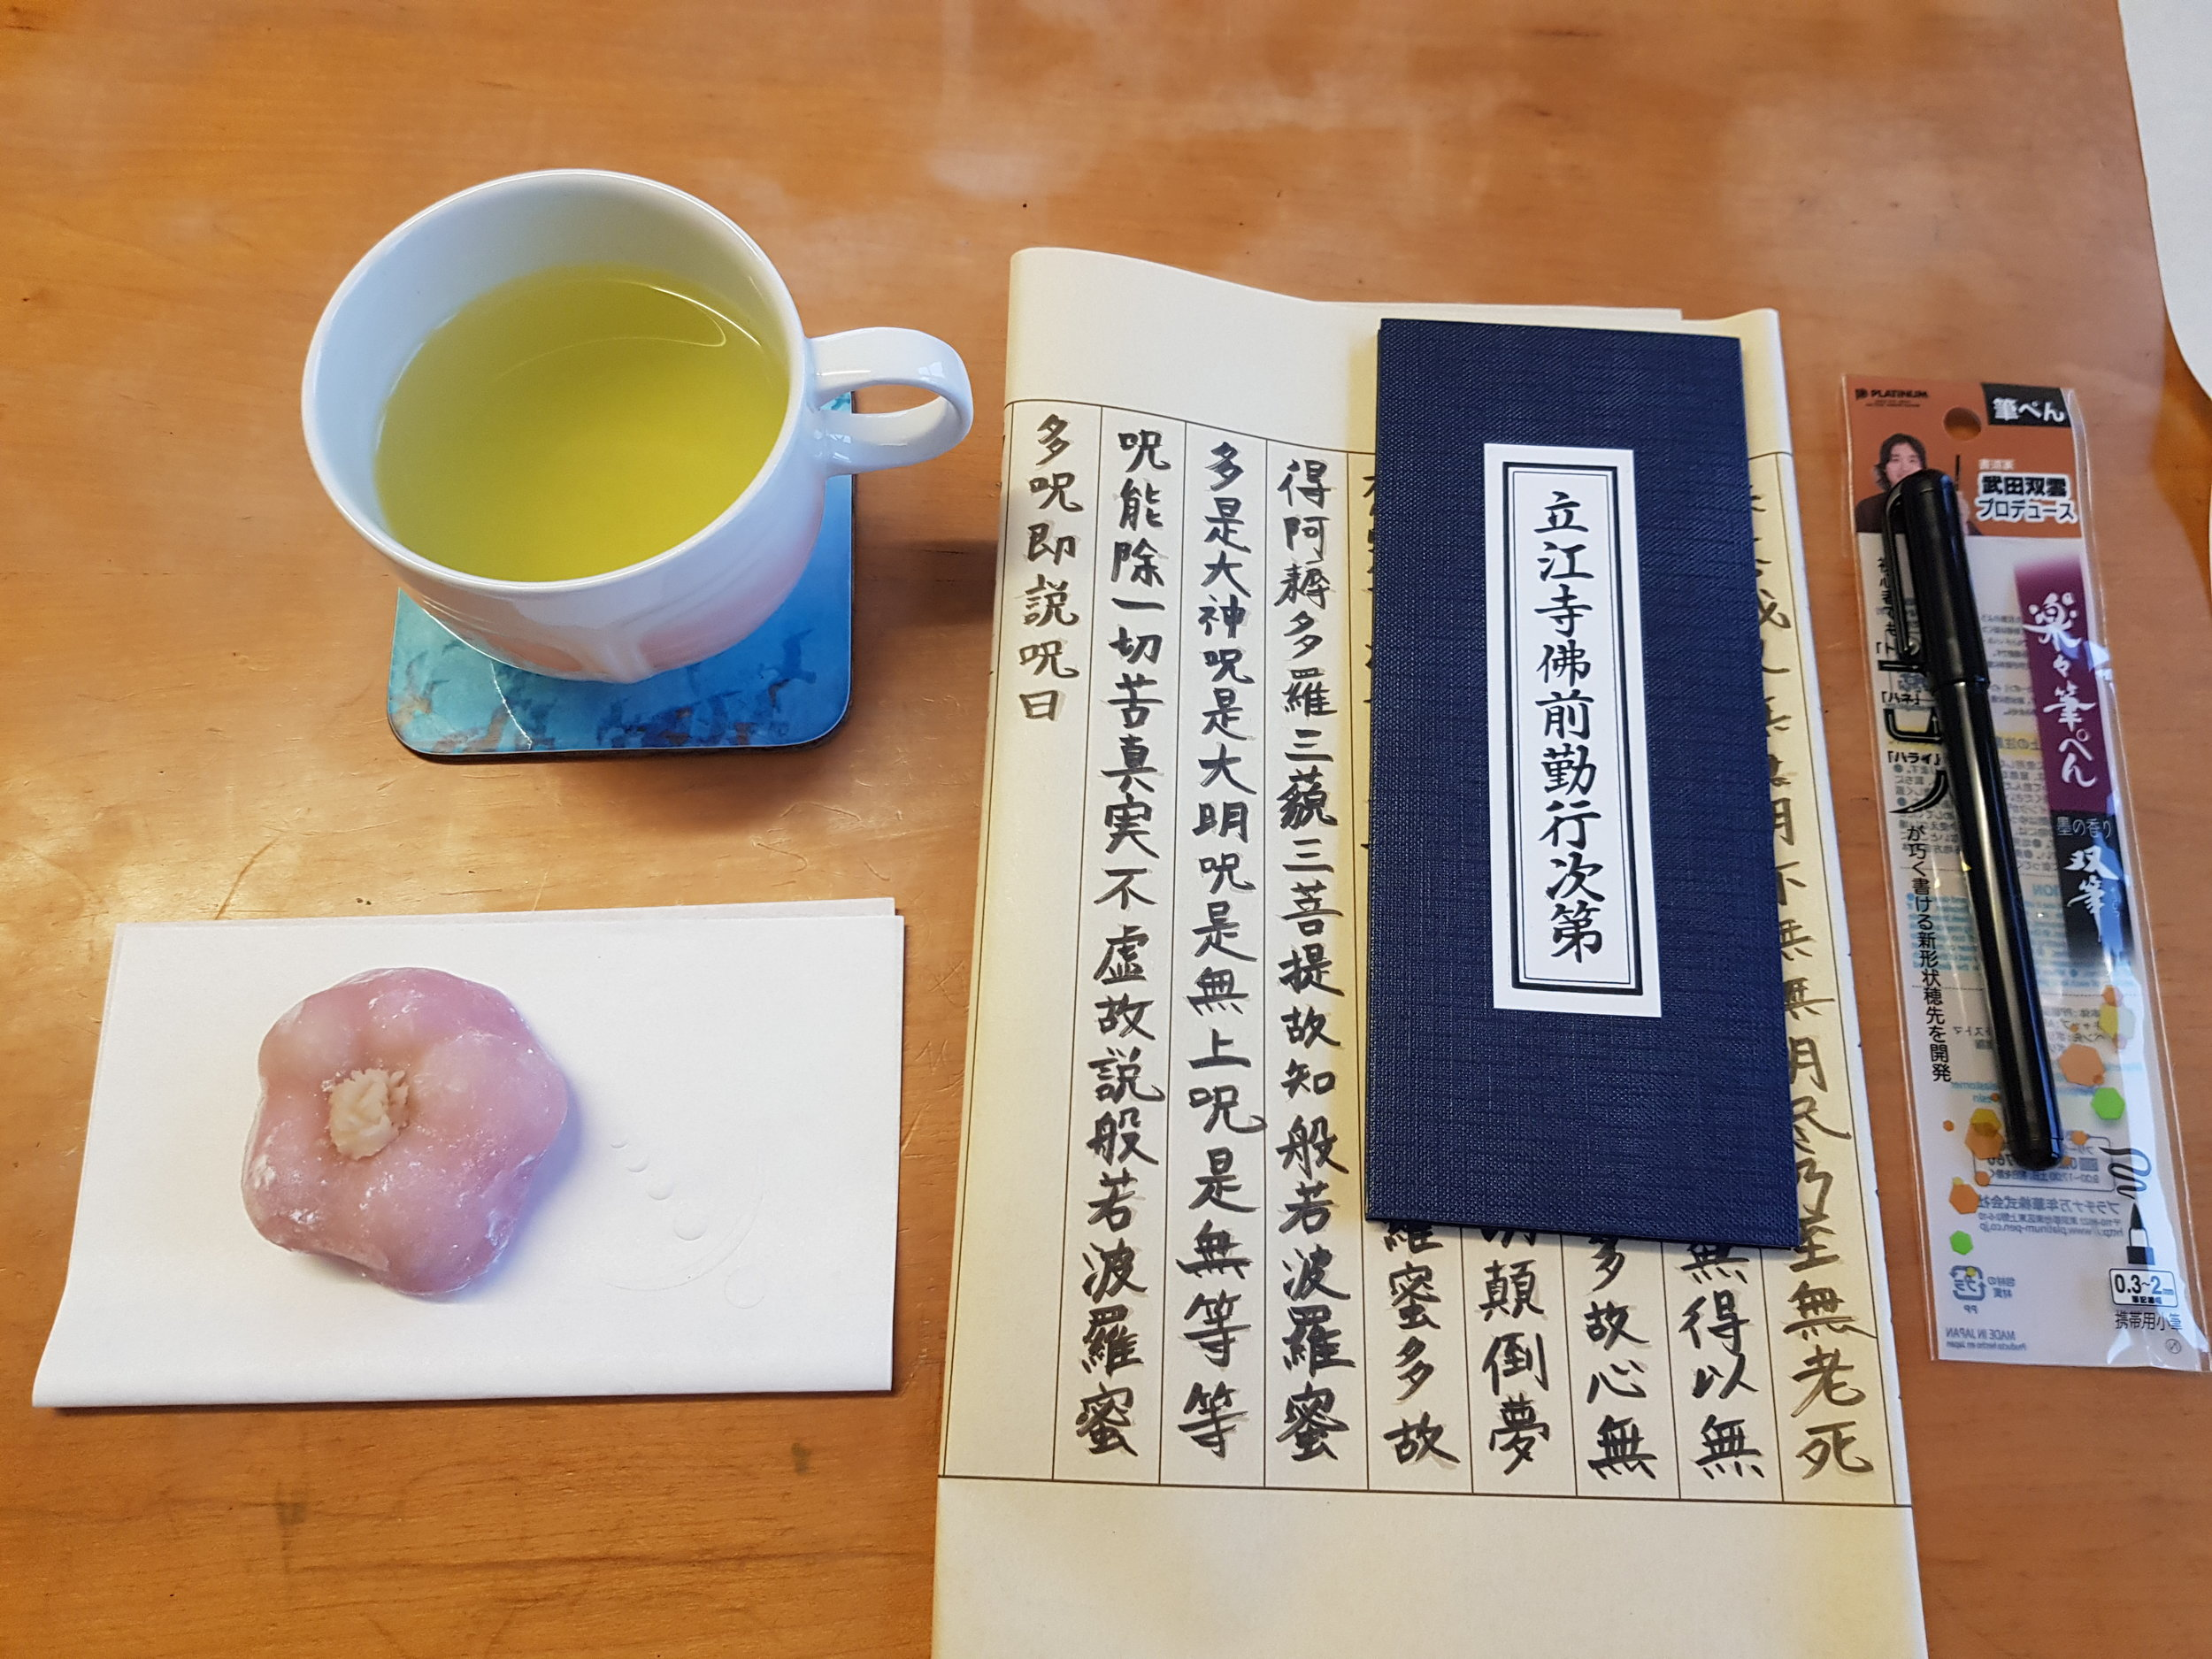 Writing the Heart Sutra Step Up Japanese Fran Wrigley Brighton 2019.jpg